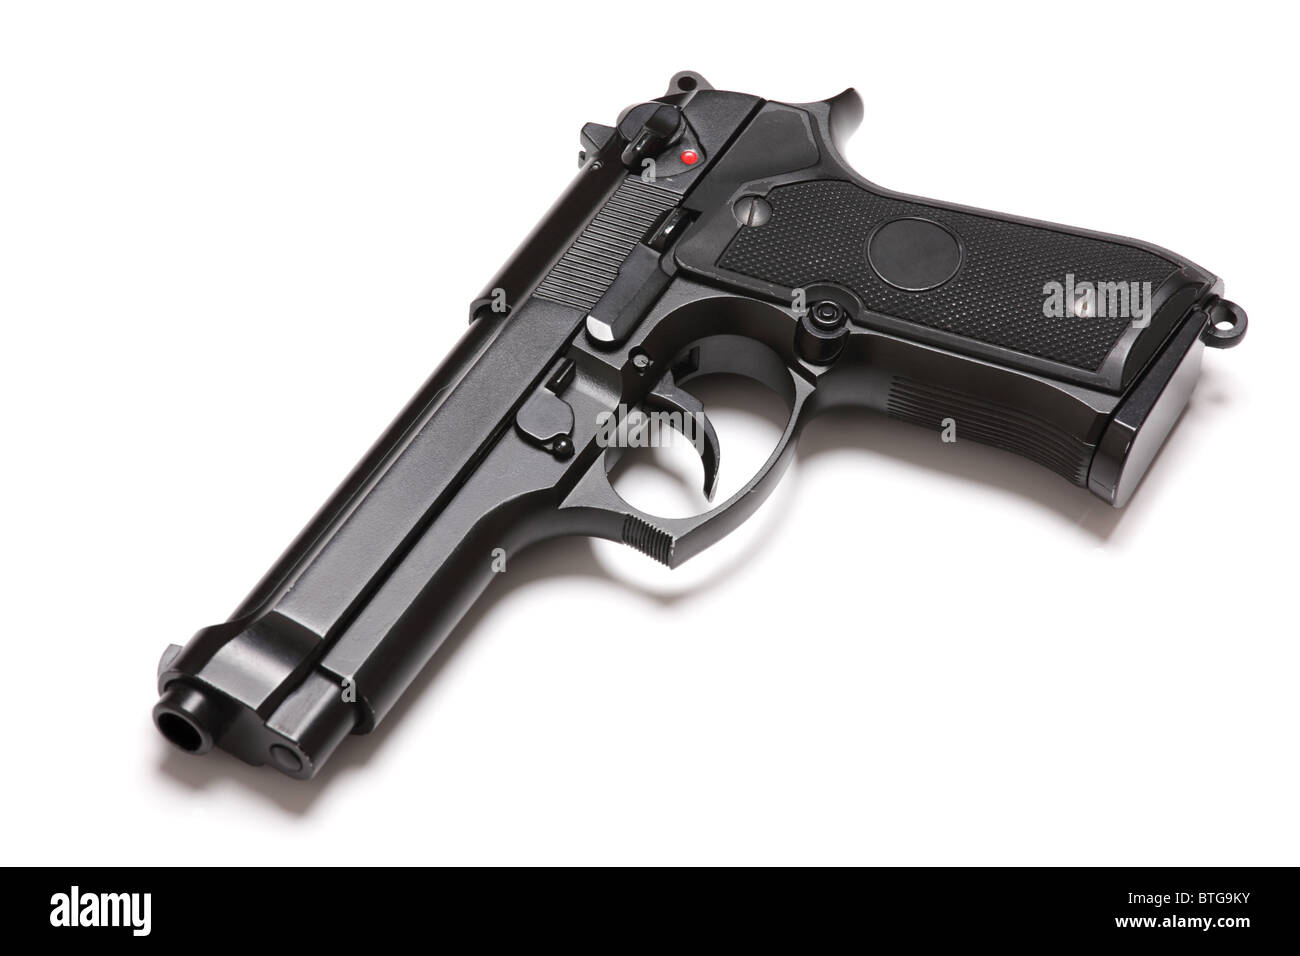 U.S. Army modern handgun M9 close-up. Isolated on a white background. Tilt view. Studio shot. Weapon series. - Stock Image